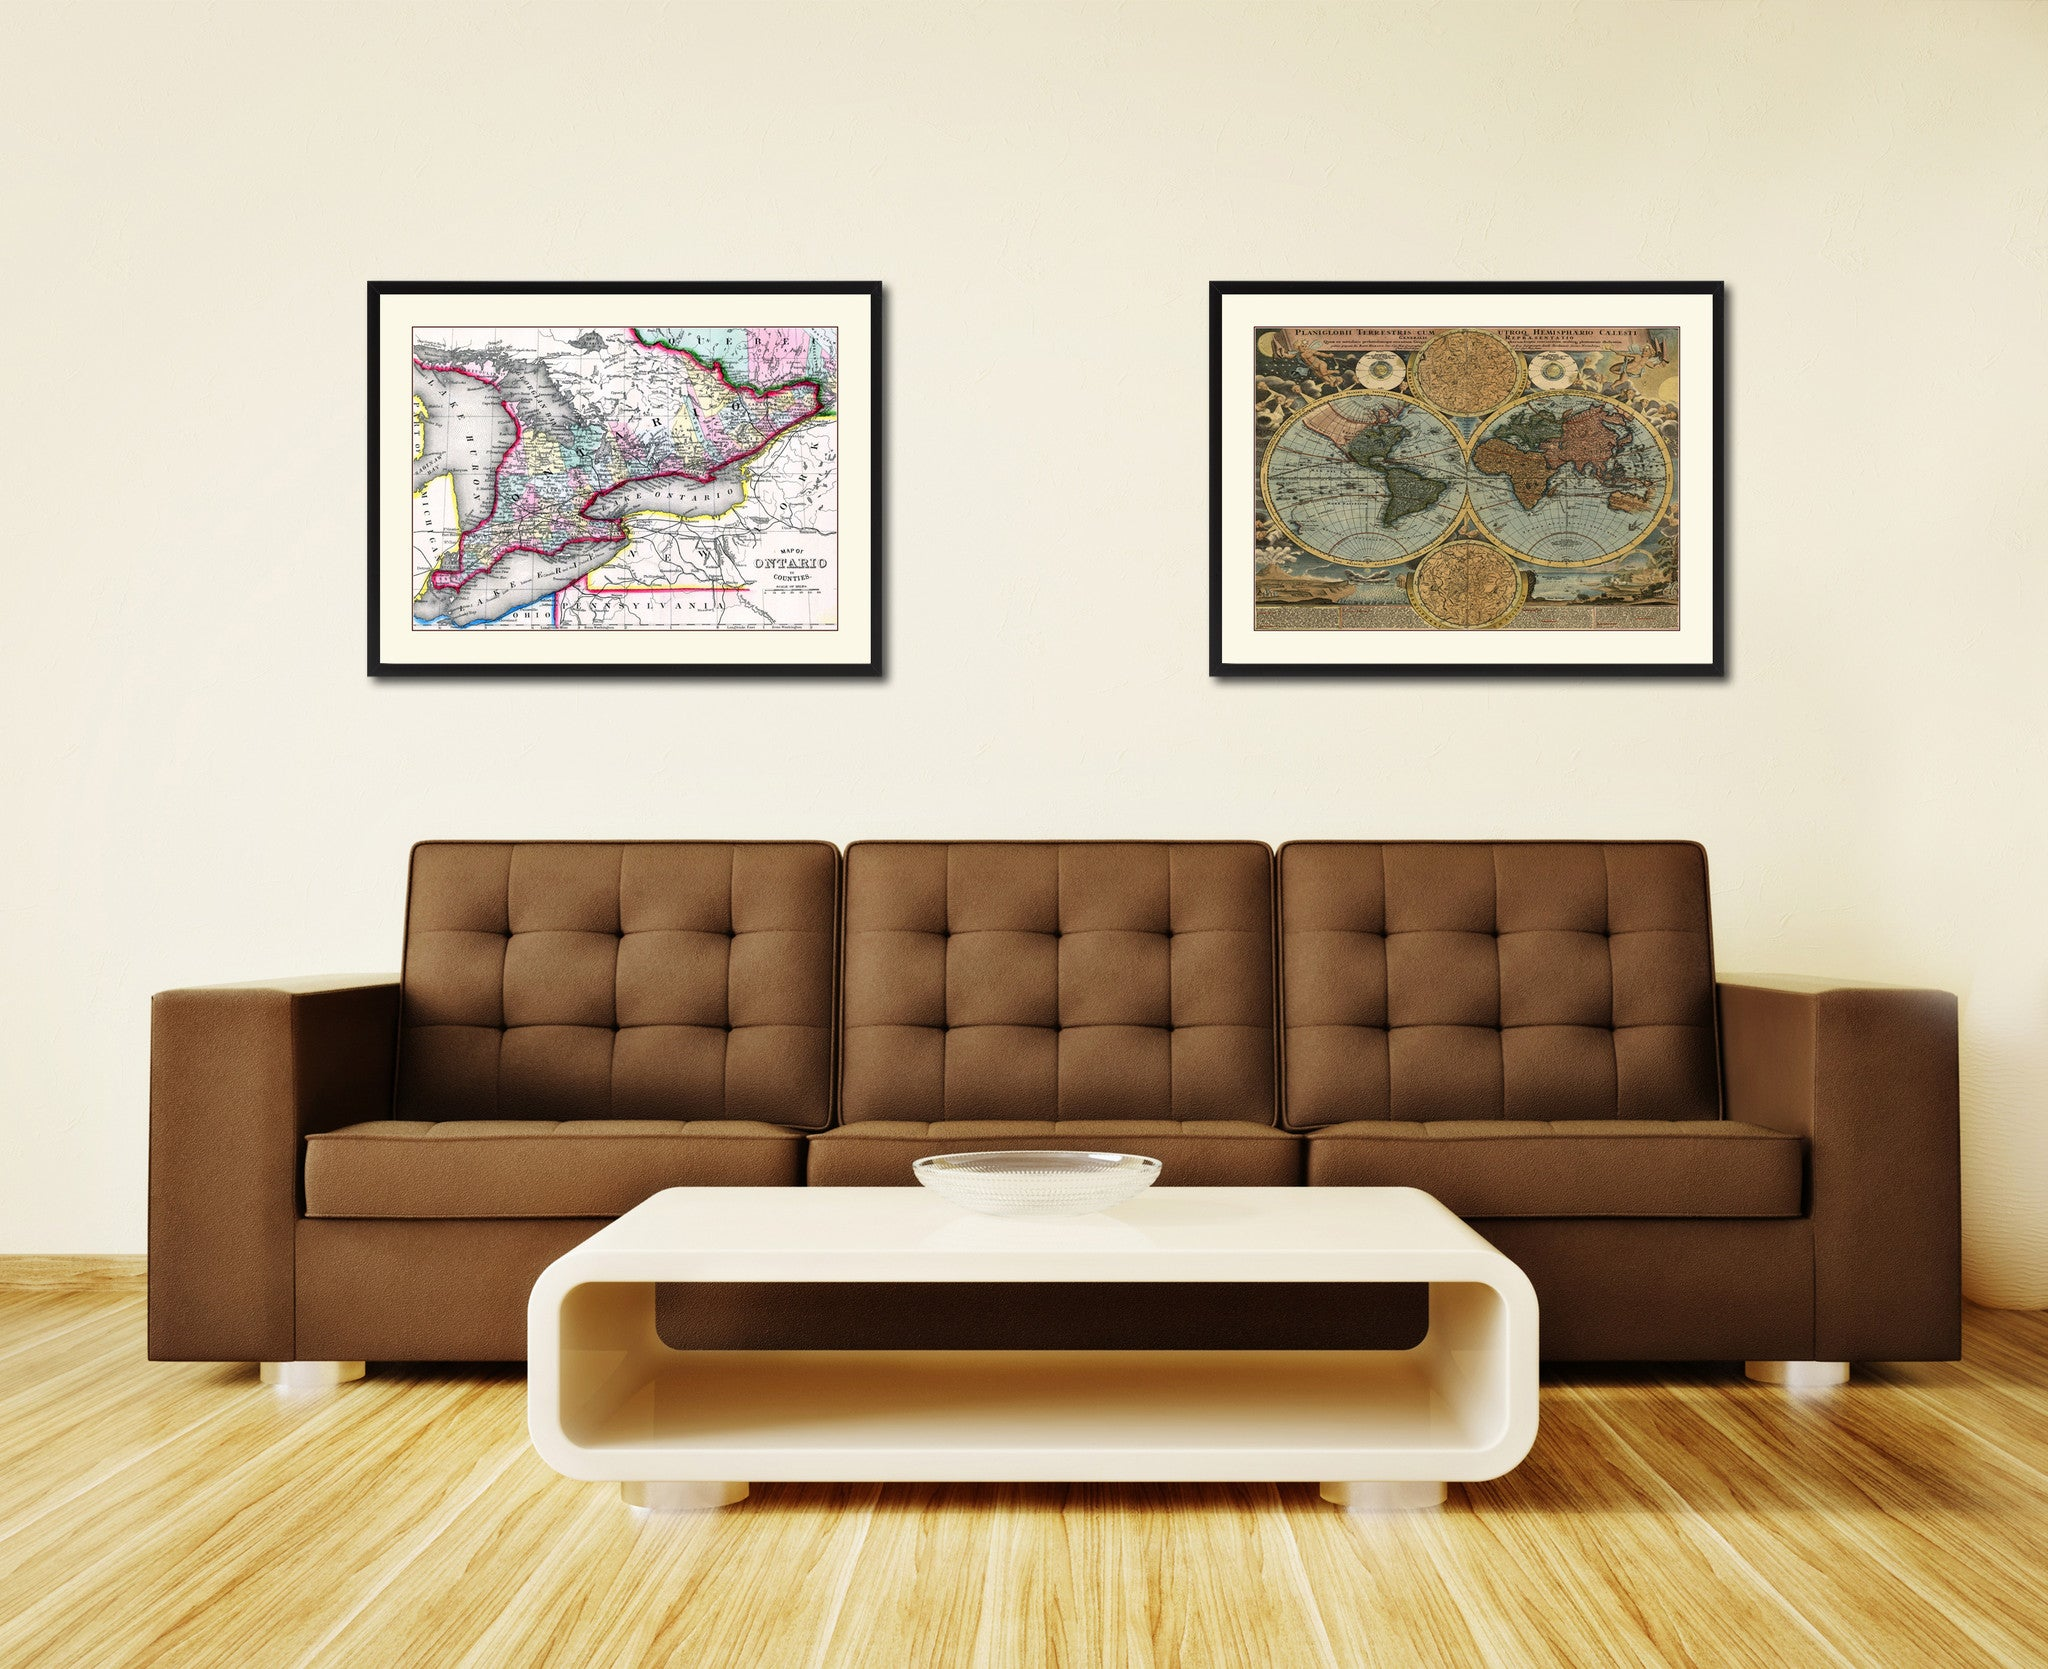 Ontario canada vintage antique map wall art bedroom home for Home decor canada